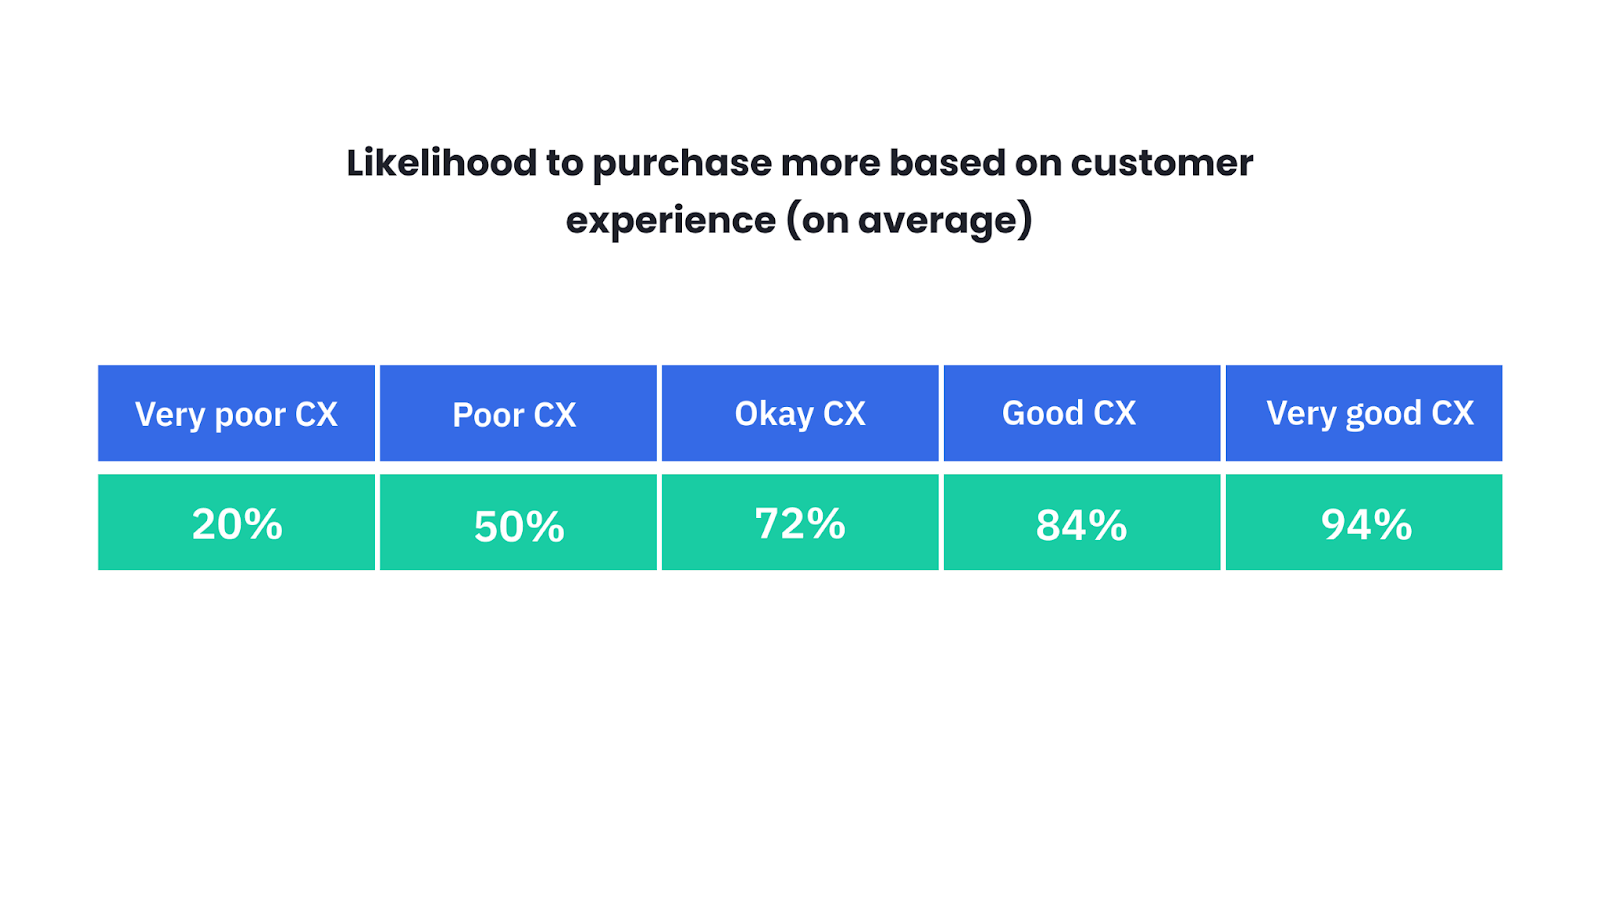 Qualitrics table outlines the likelihood to purchase based on customer experience